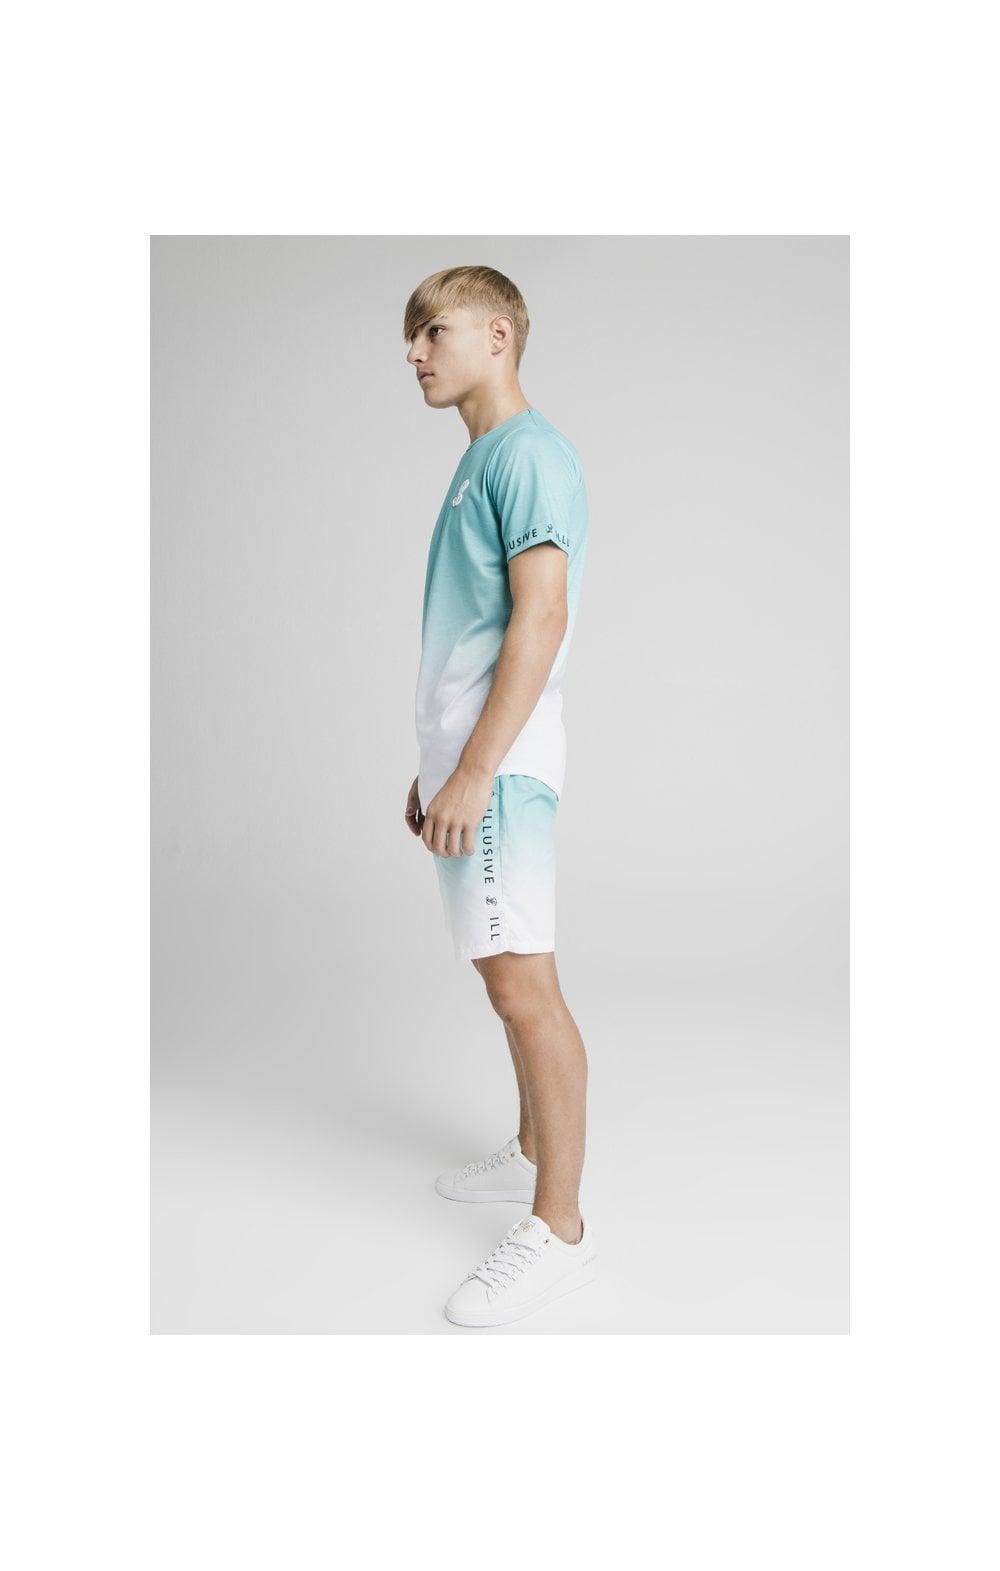 Illusive London Fade Swim Shorts - Teal & White (5)